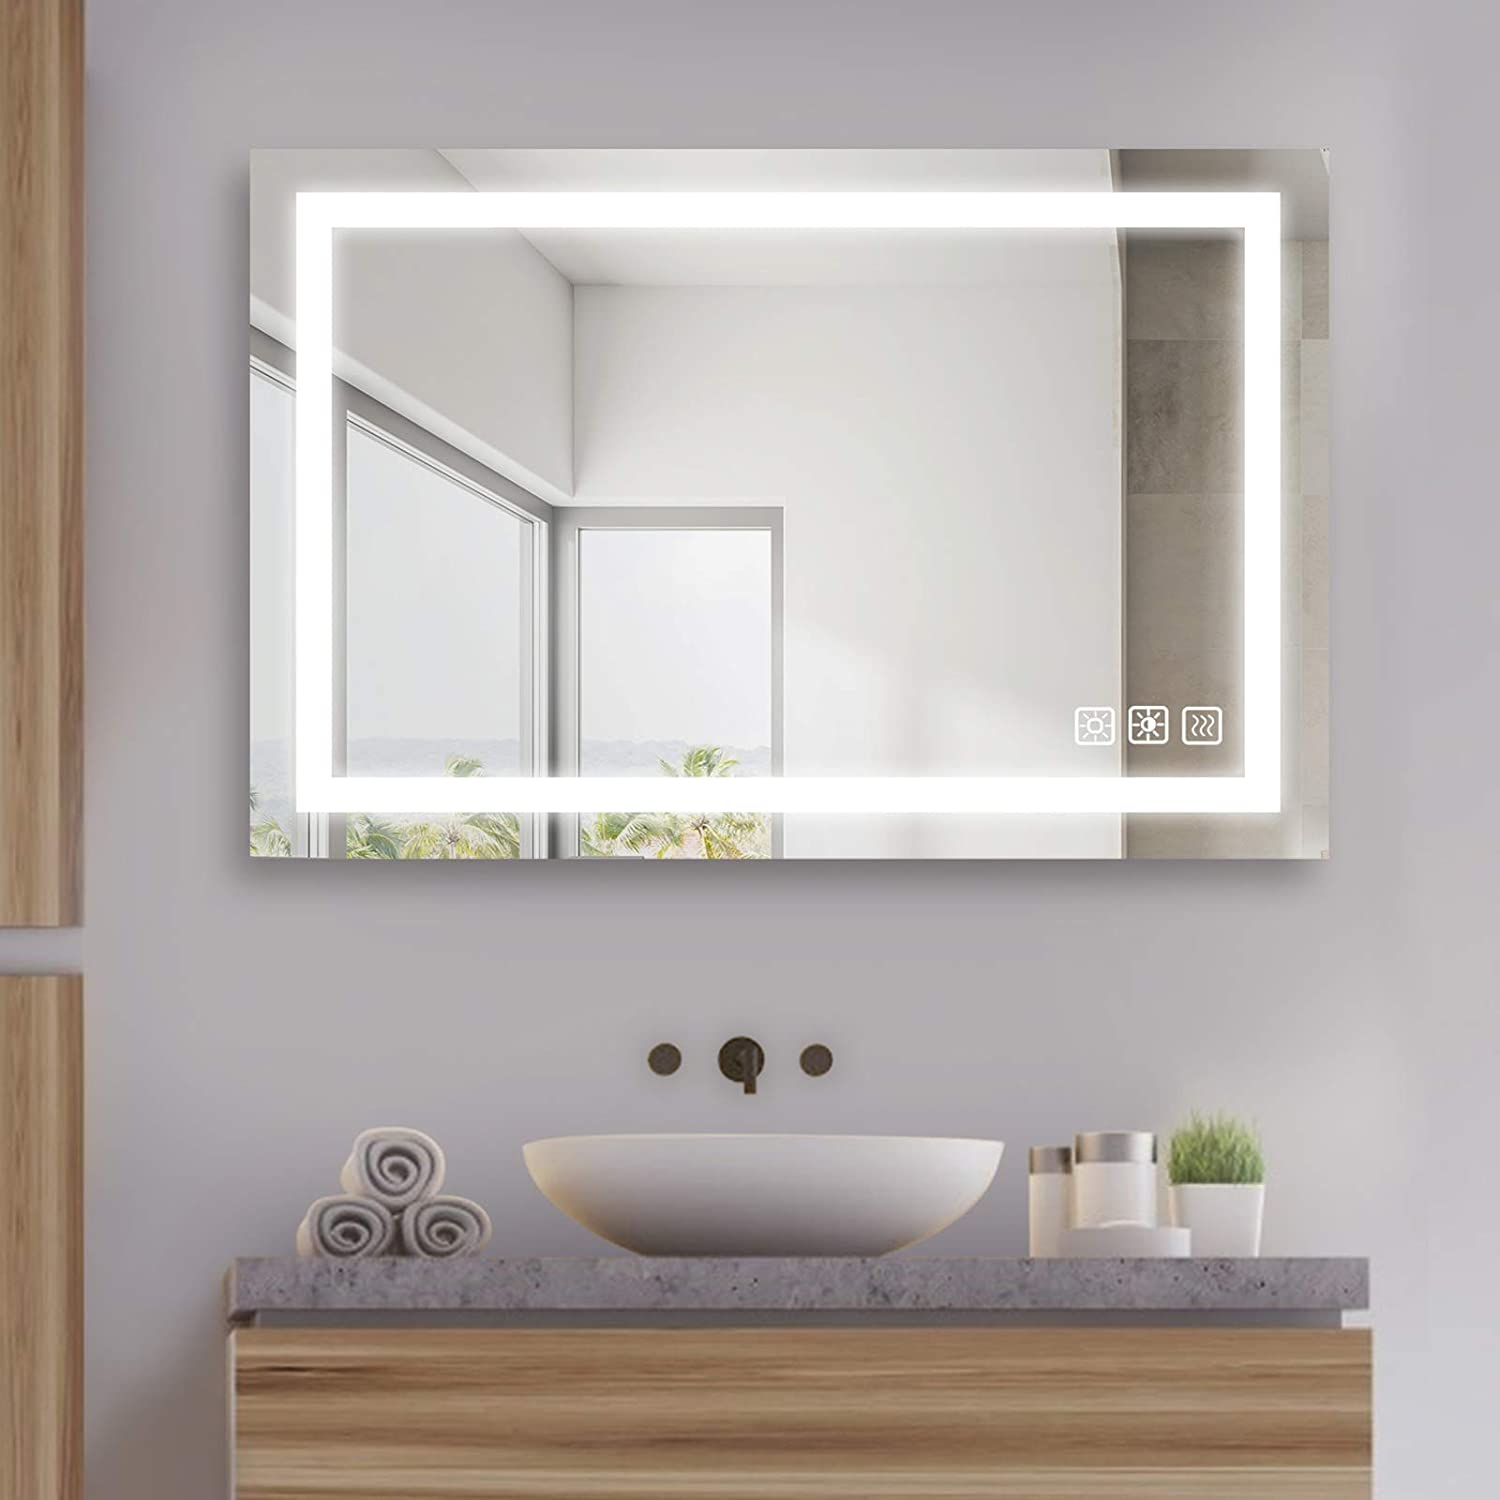 Buy Sl4u 36 X 24 Inch Led Lighted Bathroom Mirror Dimmable Wall Mounted Makeup Mirror With Light Dimming Color Tone Control Anti Fog Memory Touch Button Vertical Horizontal Ysj A001 Online